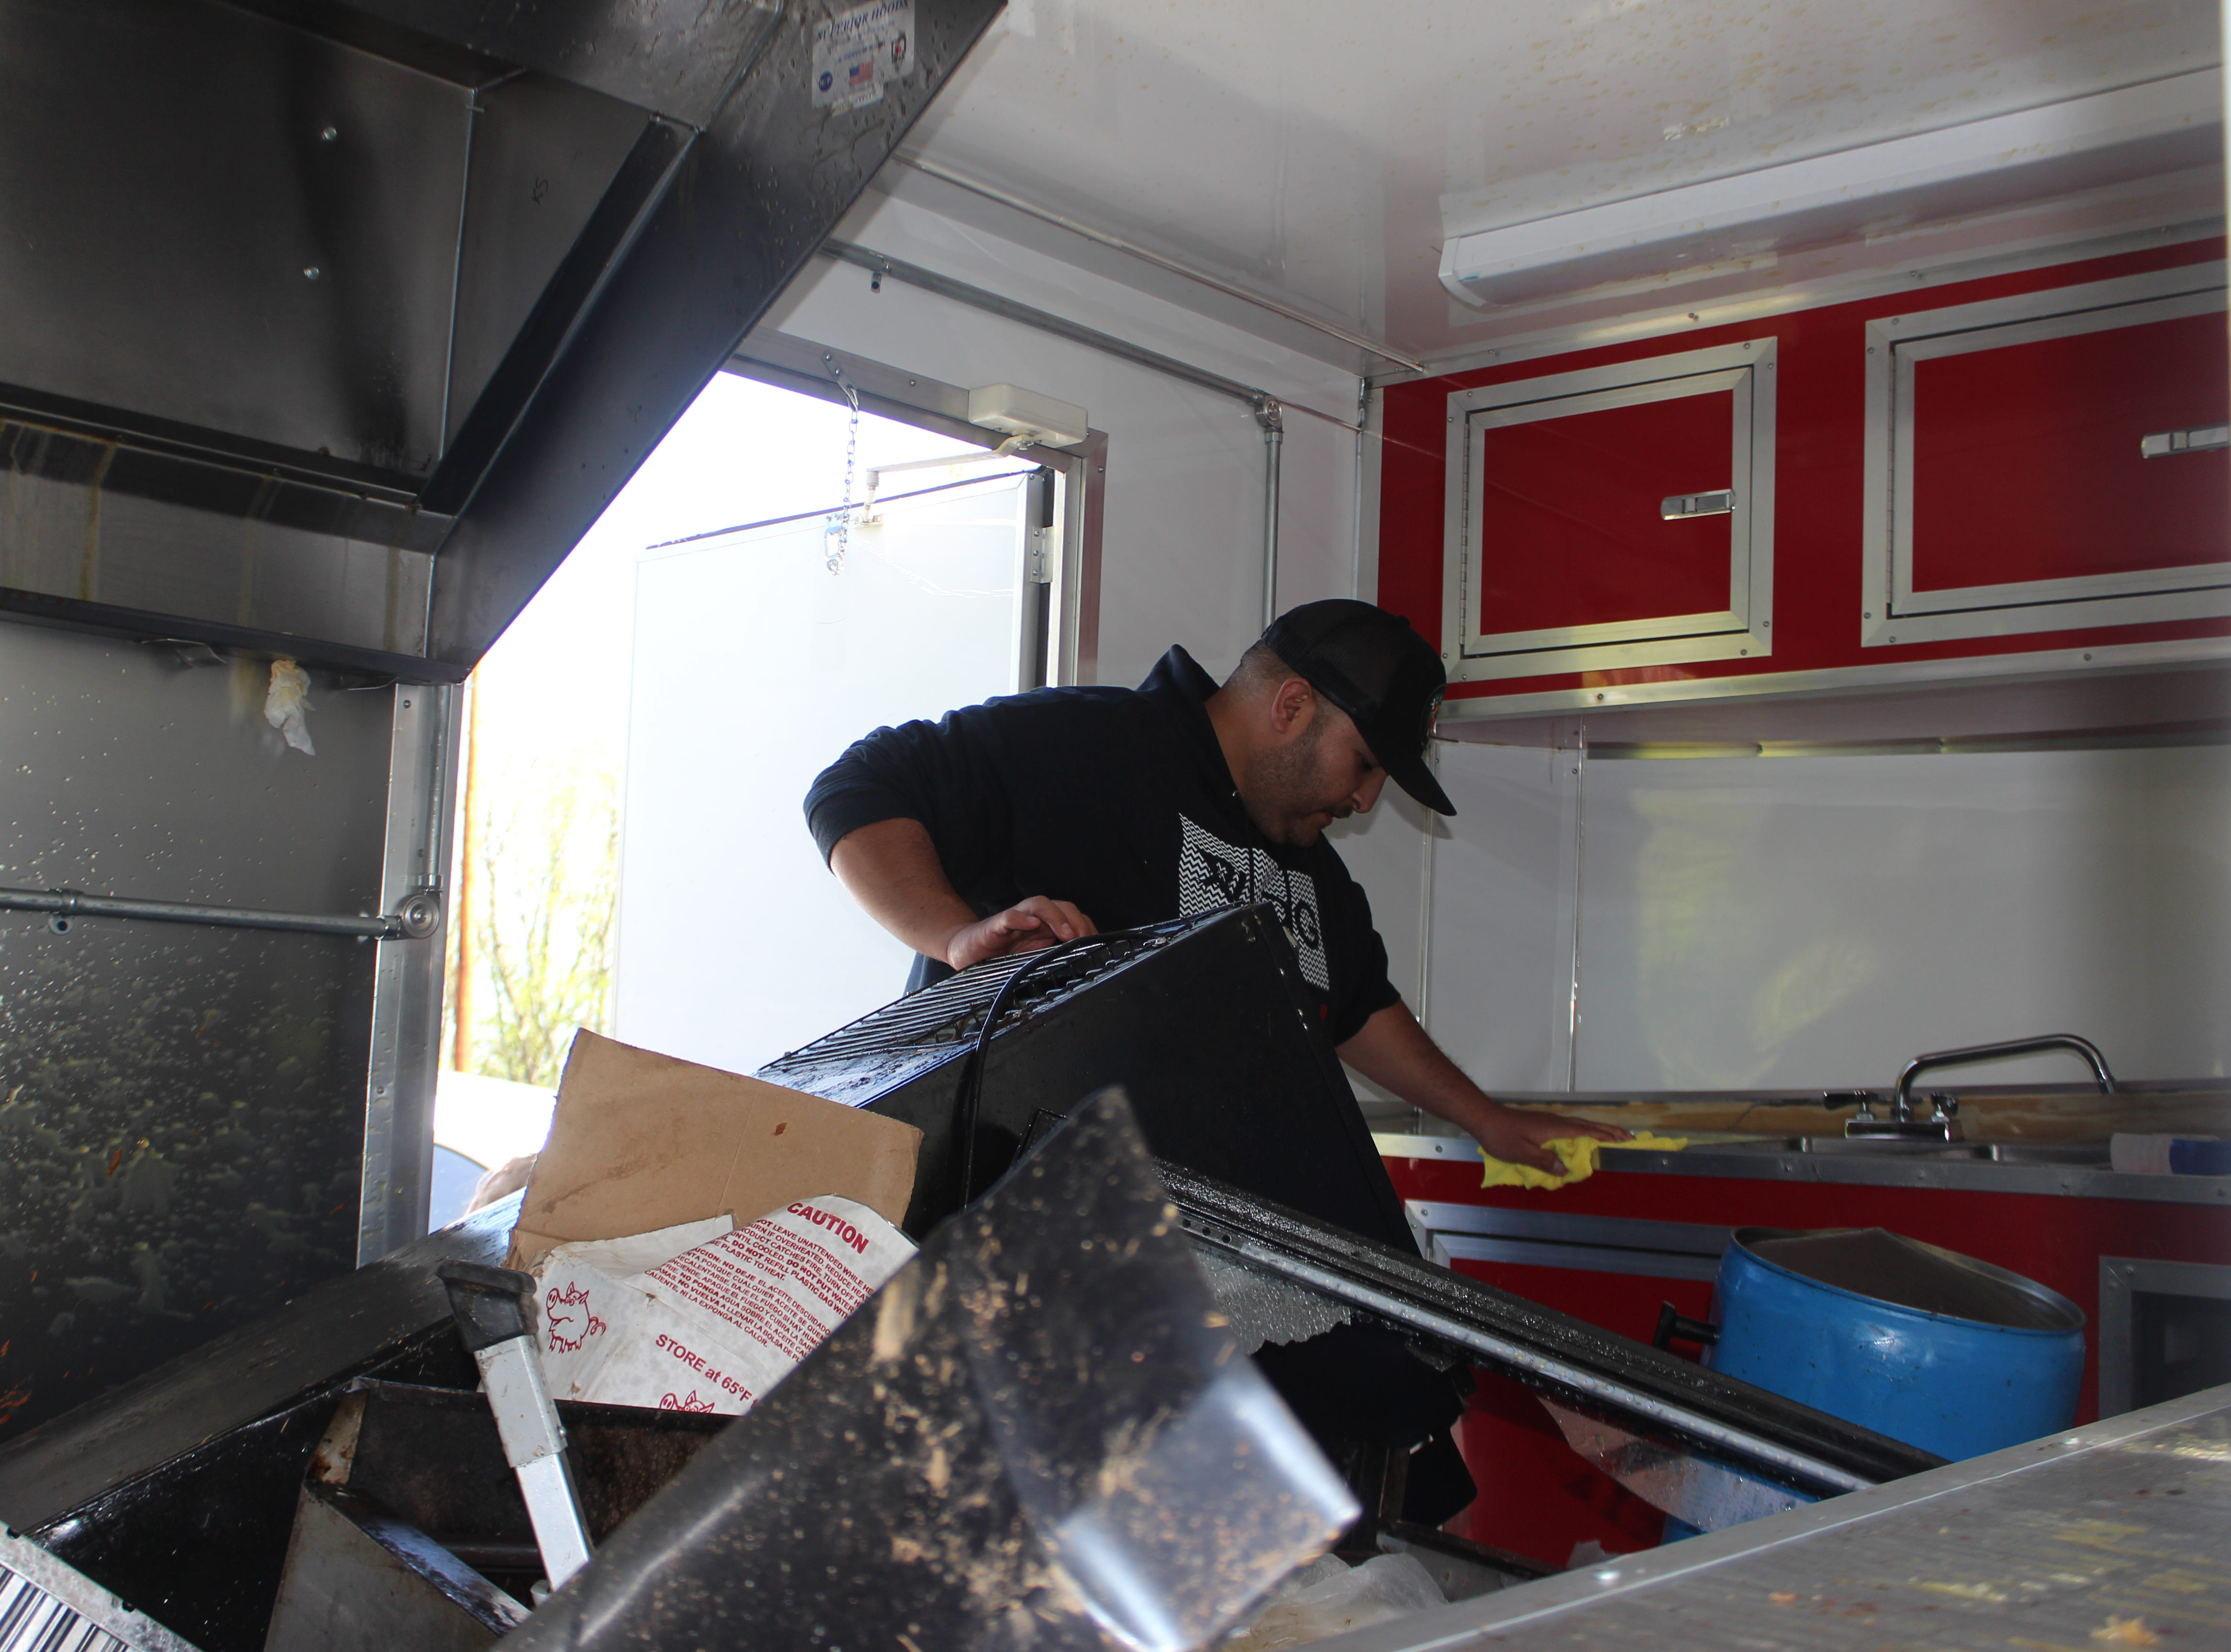 Adrian Gonzalez of Clarksville inspects the damage to his Fatboy Tacos trailer after it was totaled in a wreck Saturday, April 13, 2019.